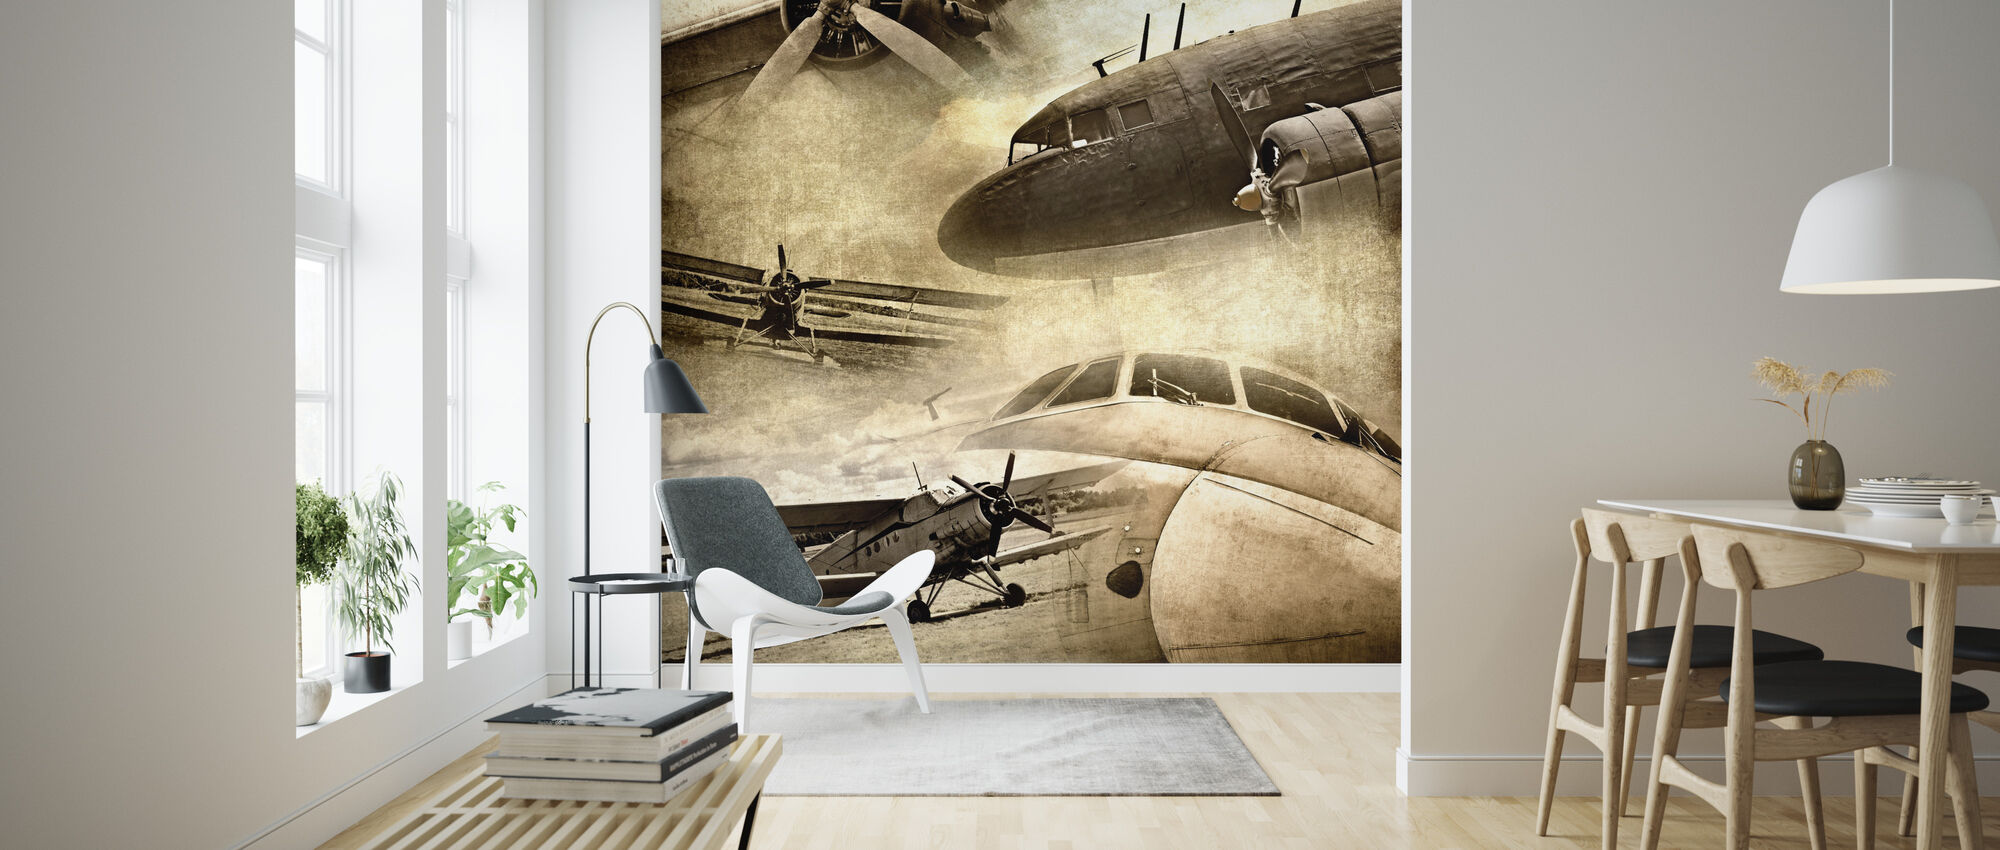 Retro Airplanes - Wallpaper - Living Room